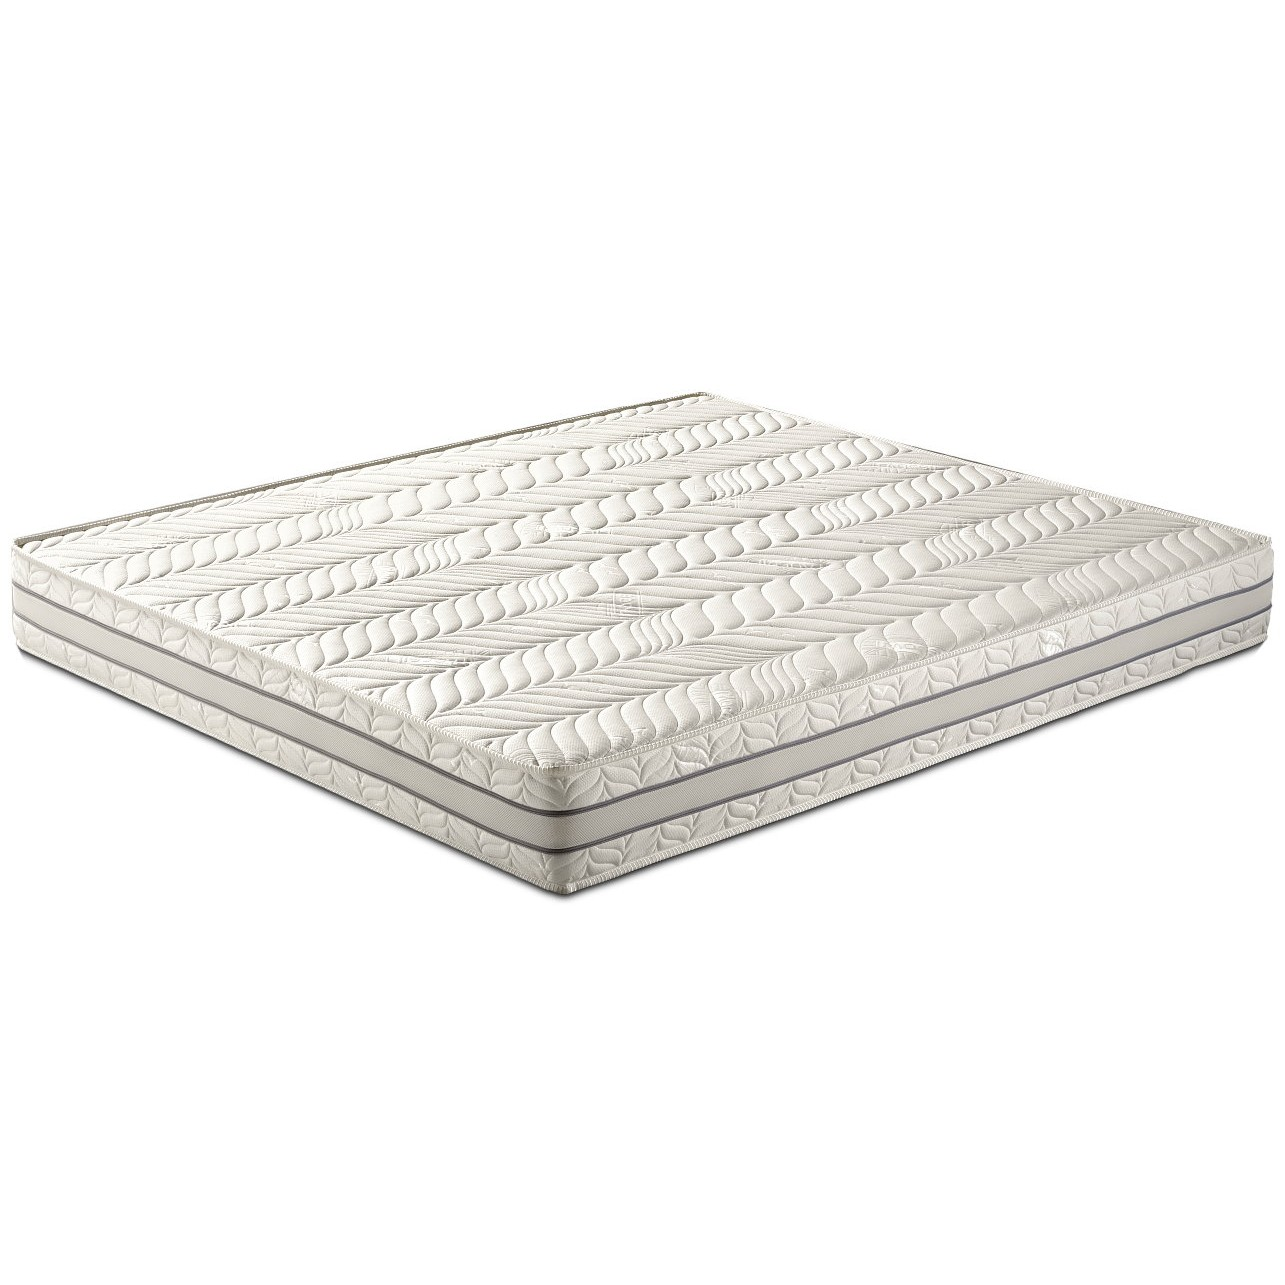 Materasso Como in memory foam MyMemory termico 3 strati e 7 zone differenziate